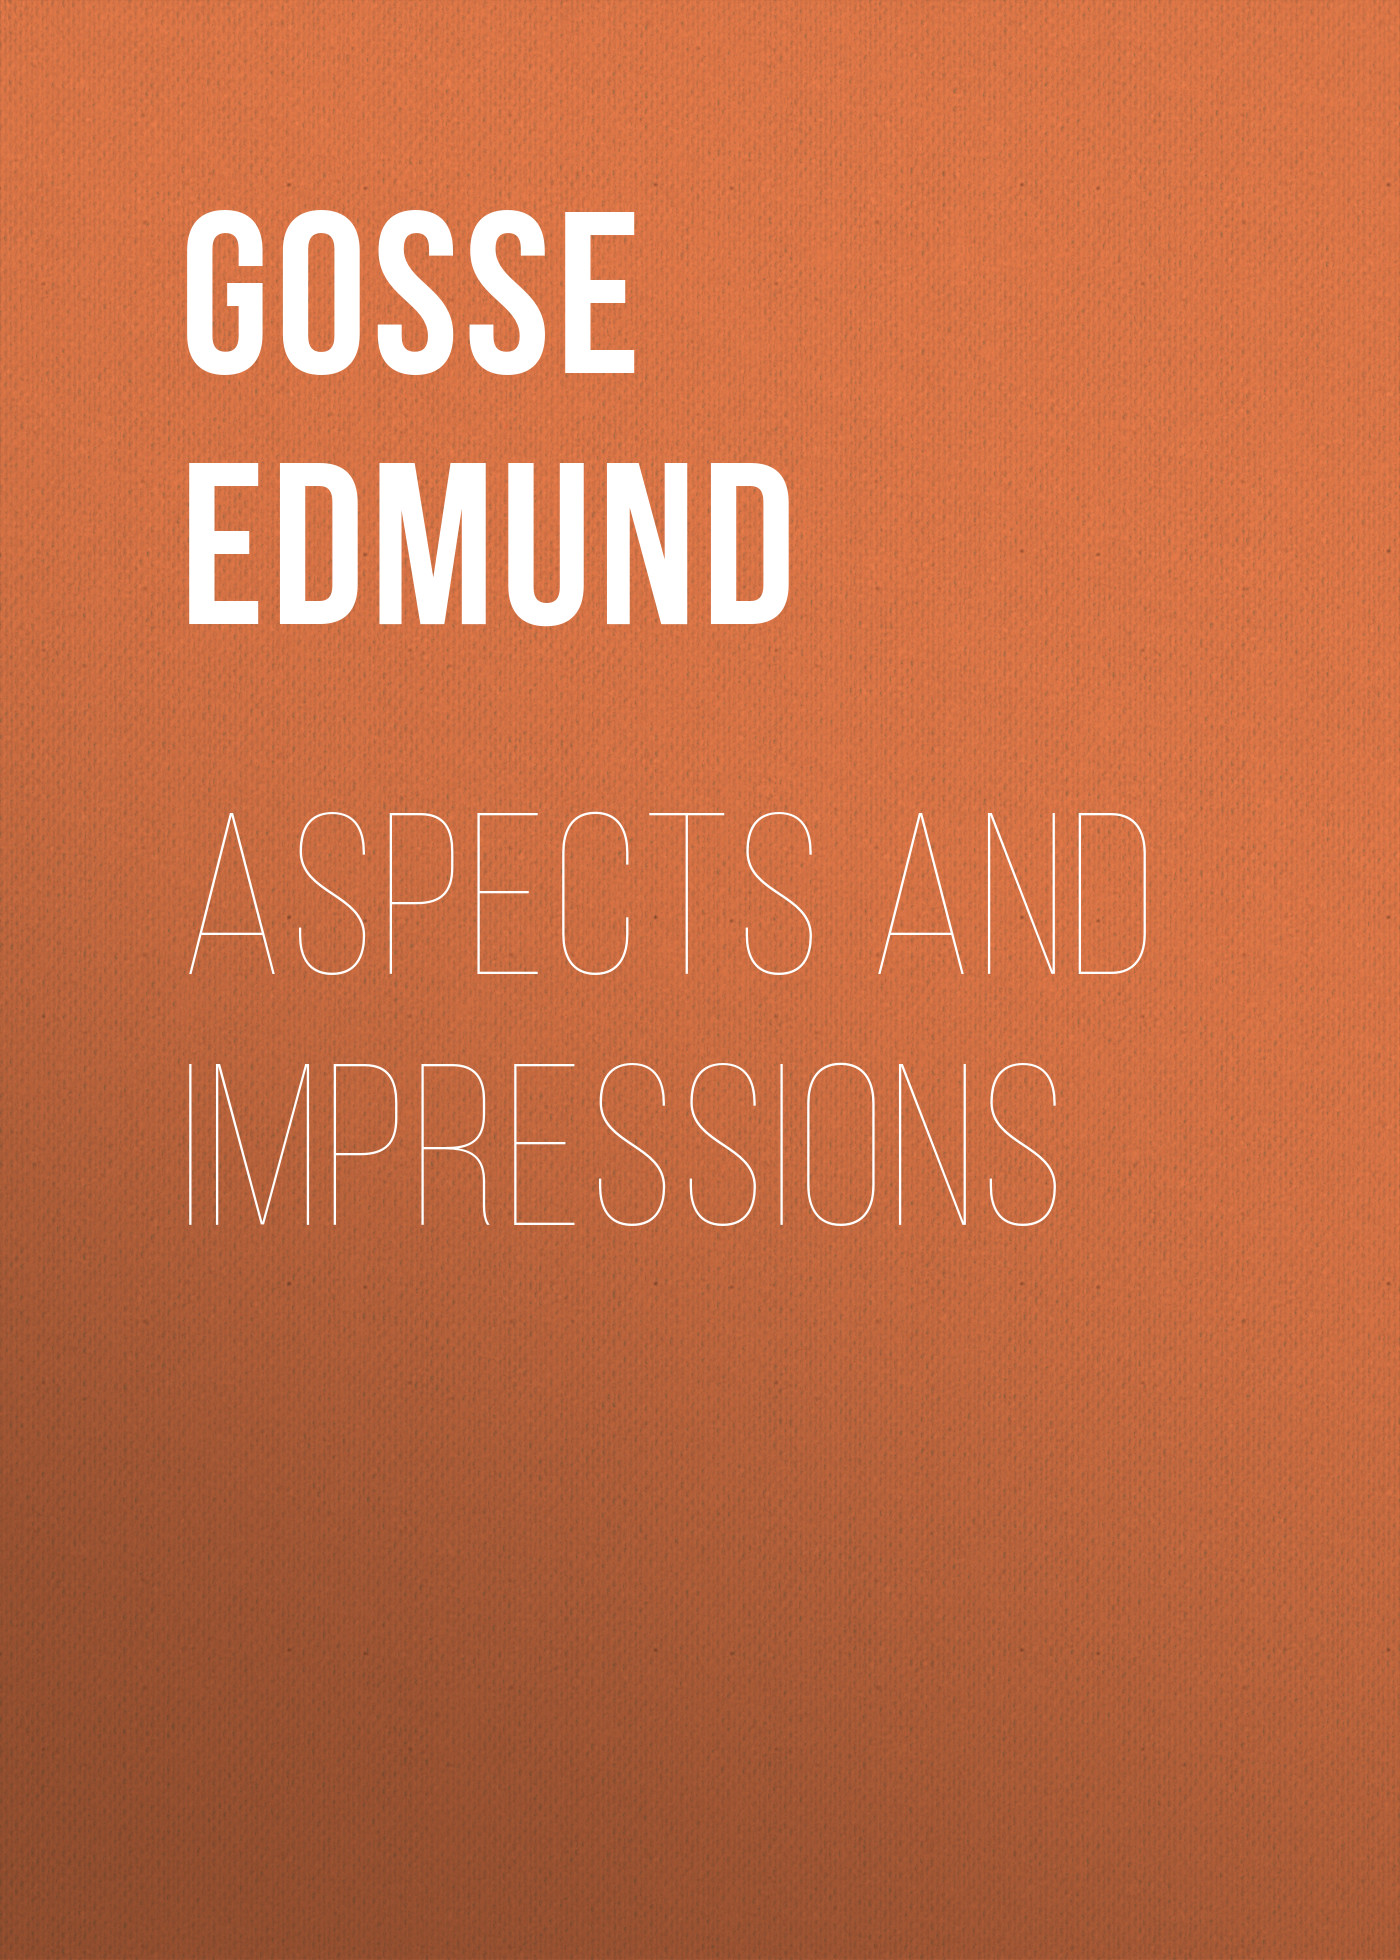 Gosse Edmund Aspects and Impressions frothingham octavius brooks recollections and impressions 1822 1890